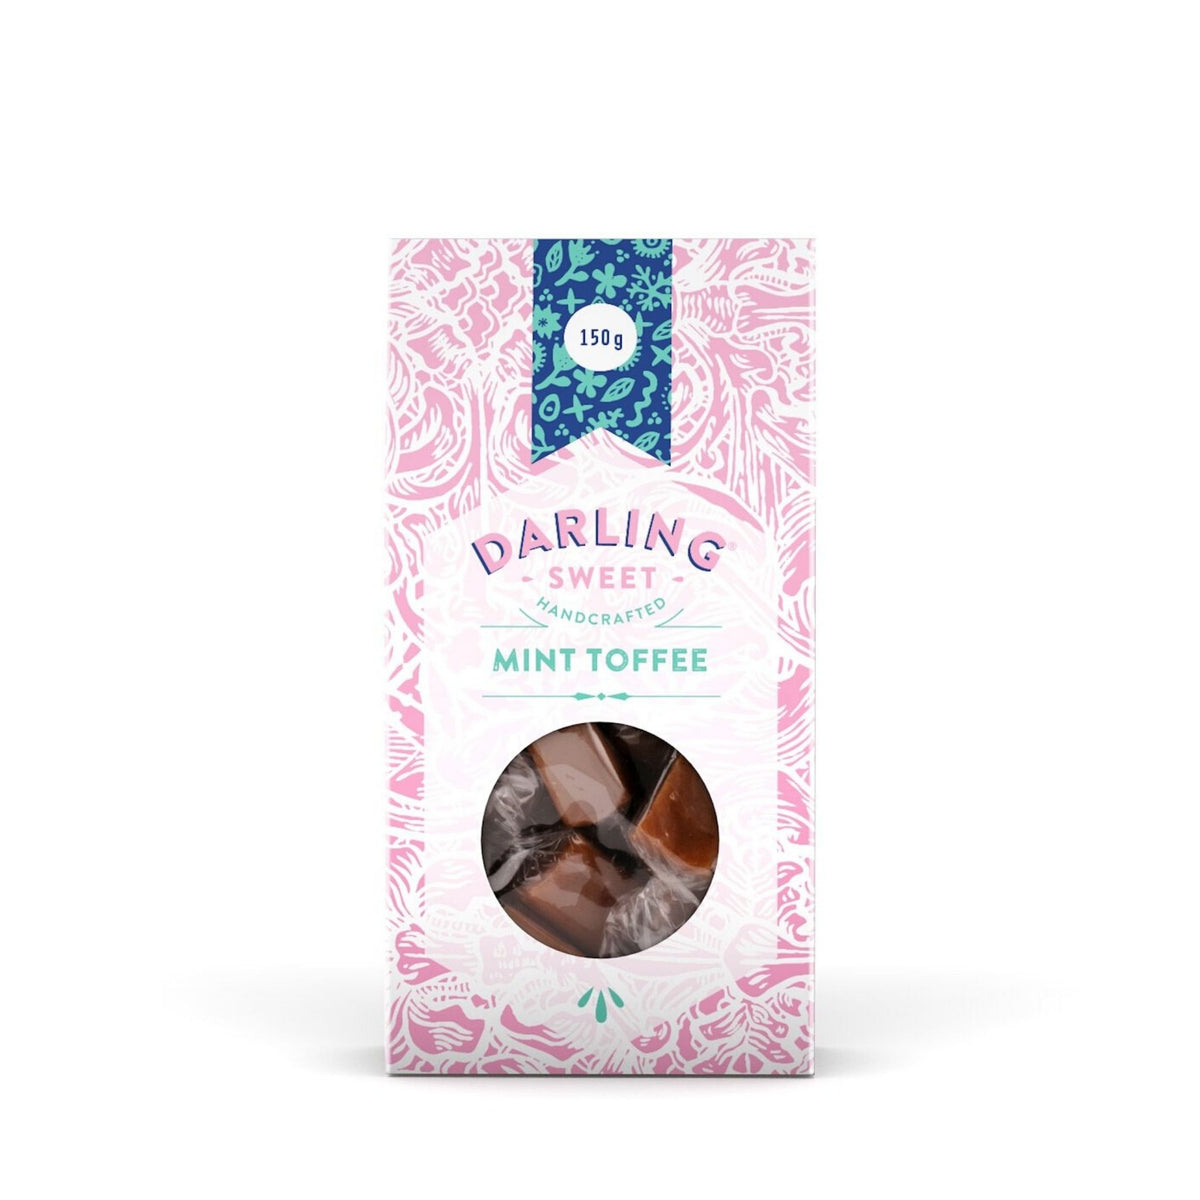 Darling Sweet Mint Toffee